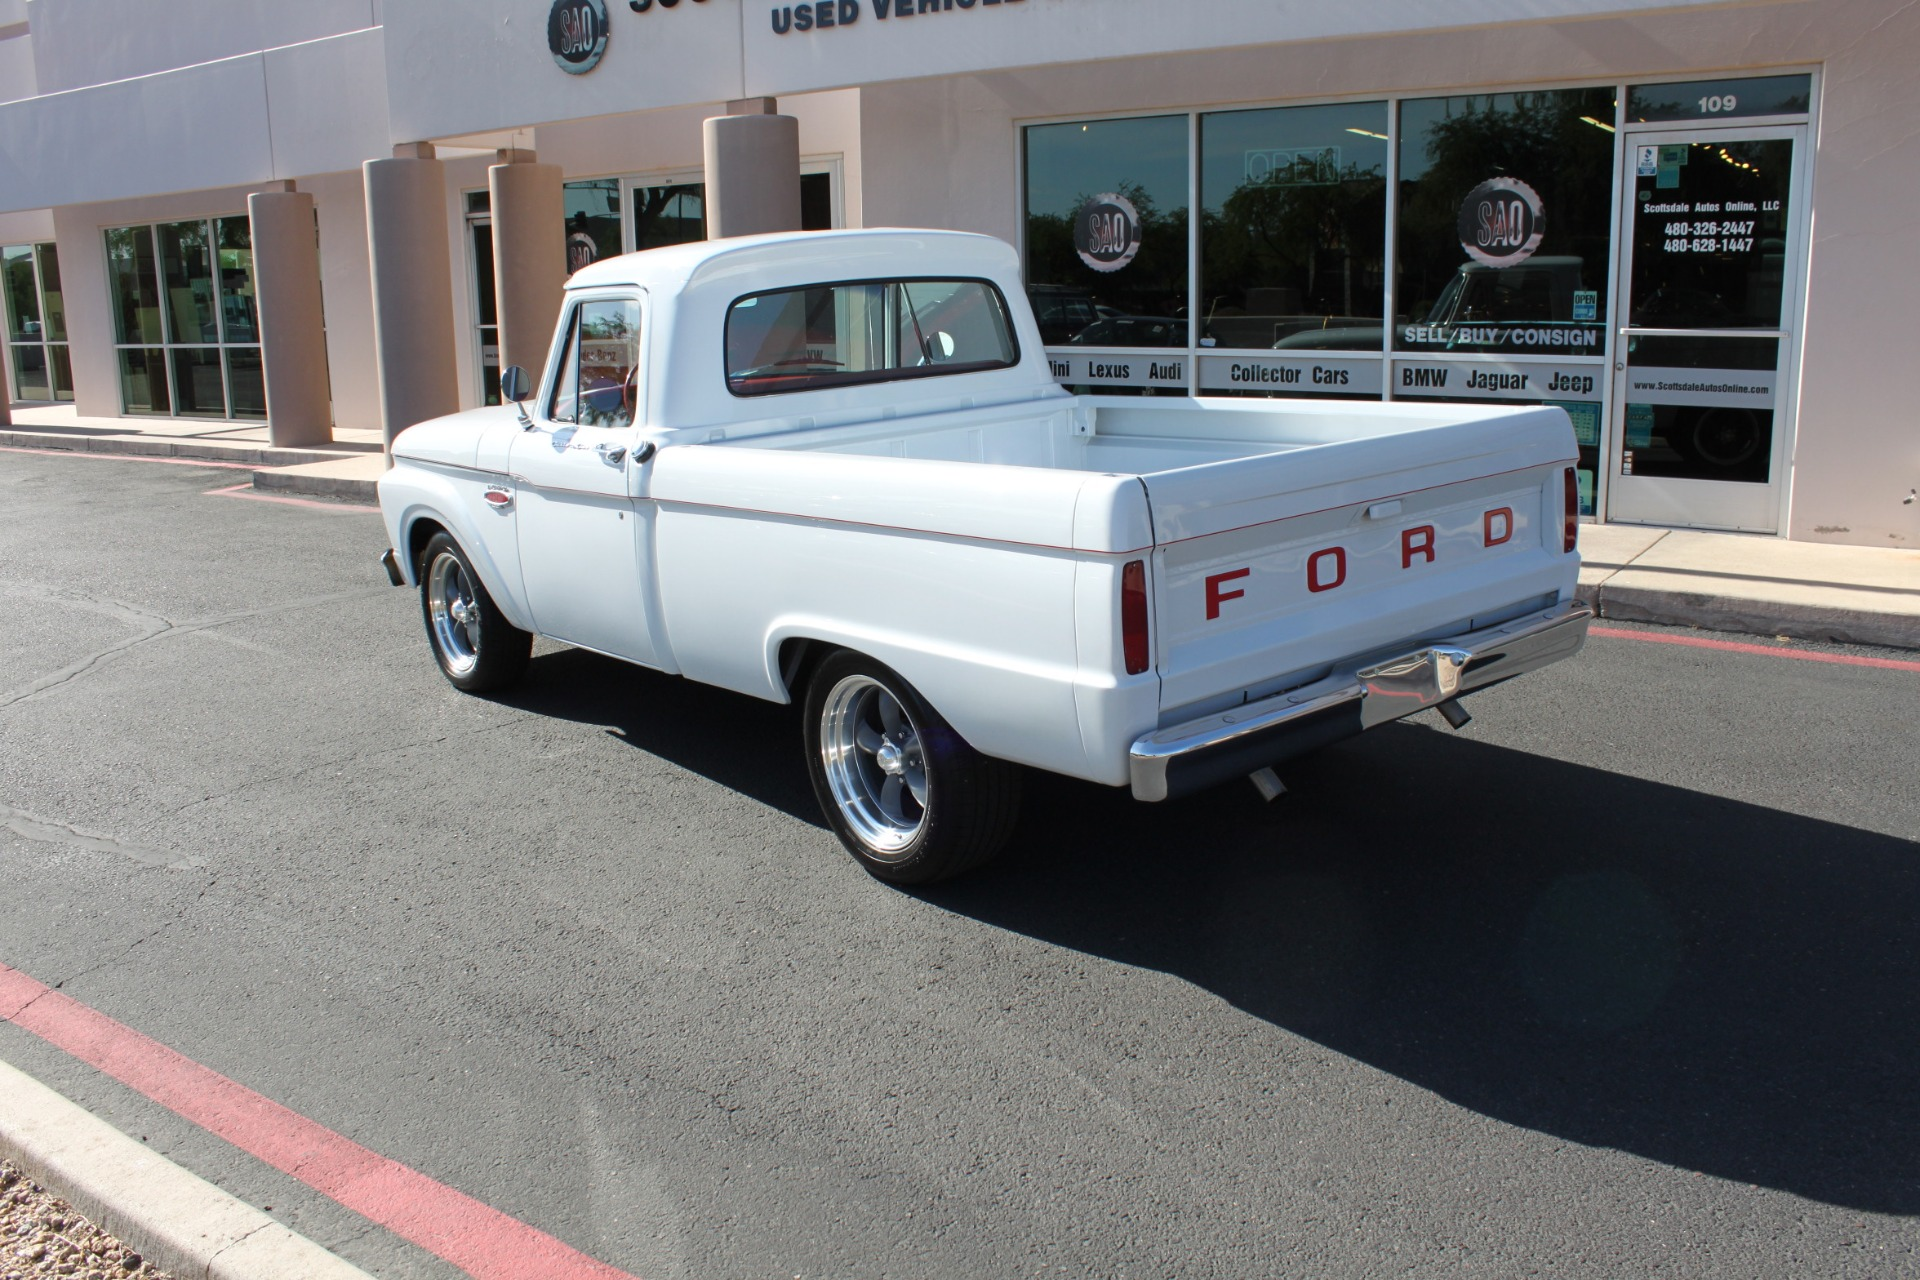 Used-1966-Ford-F-100-Custom-Cab-Chalenger